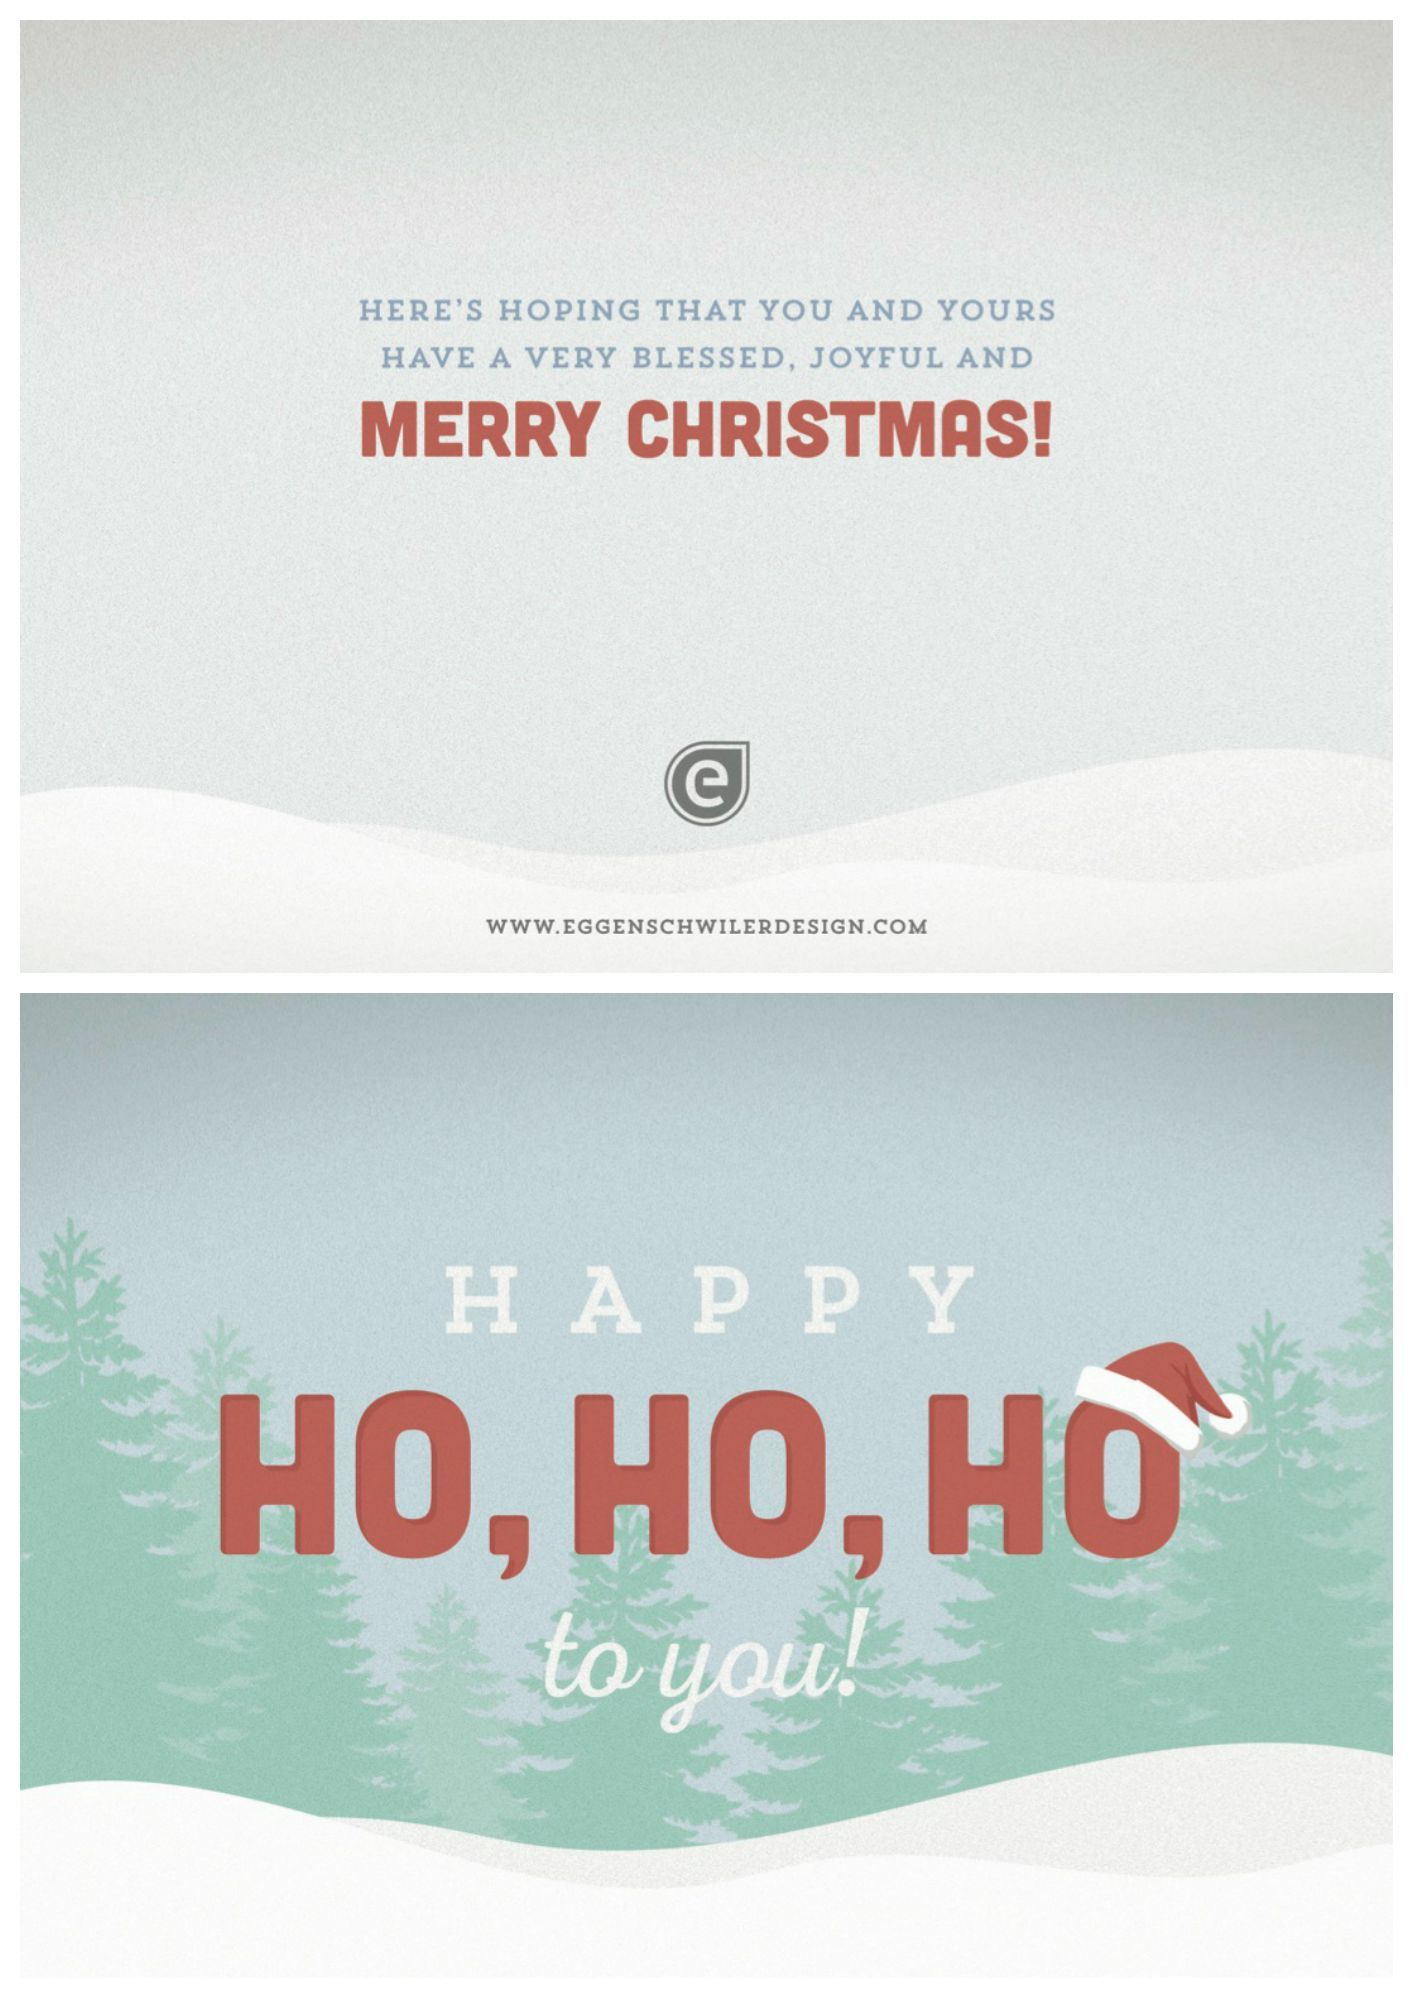 Corporate Christmas Card With Simple Design And Colors